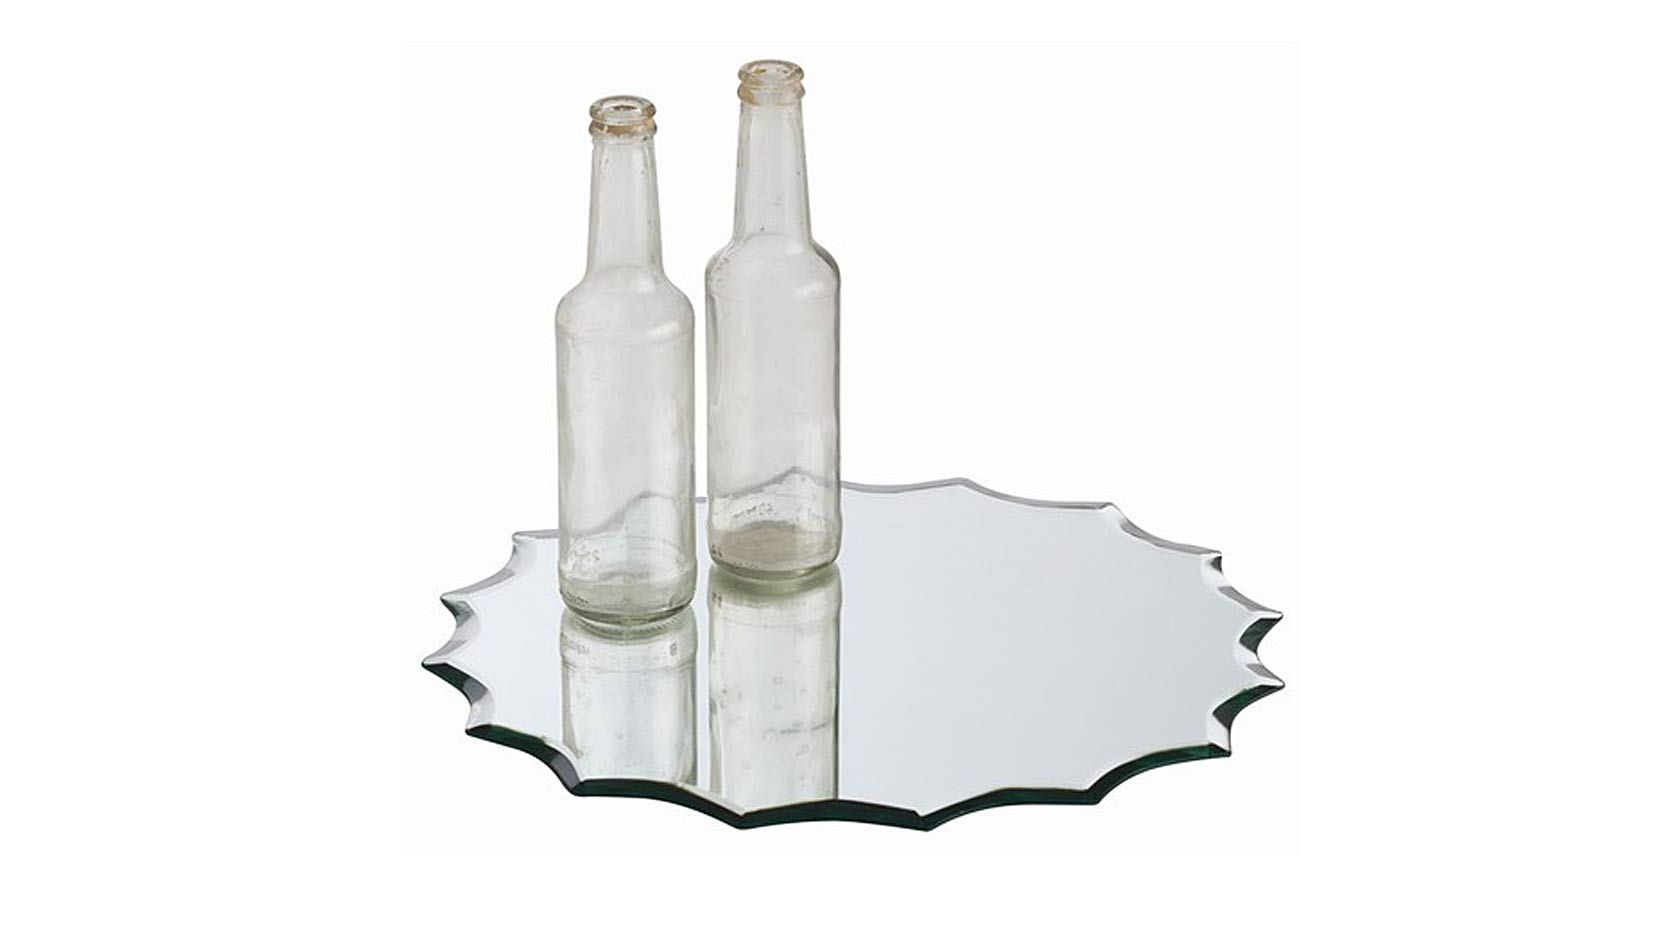 Scalloped Flat Mirror